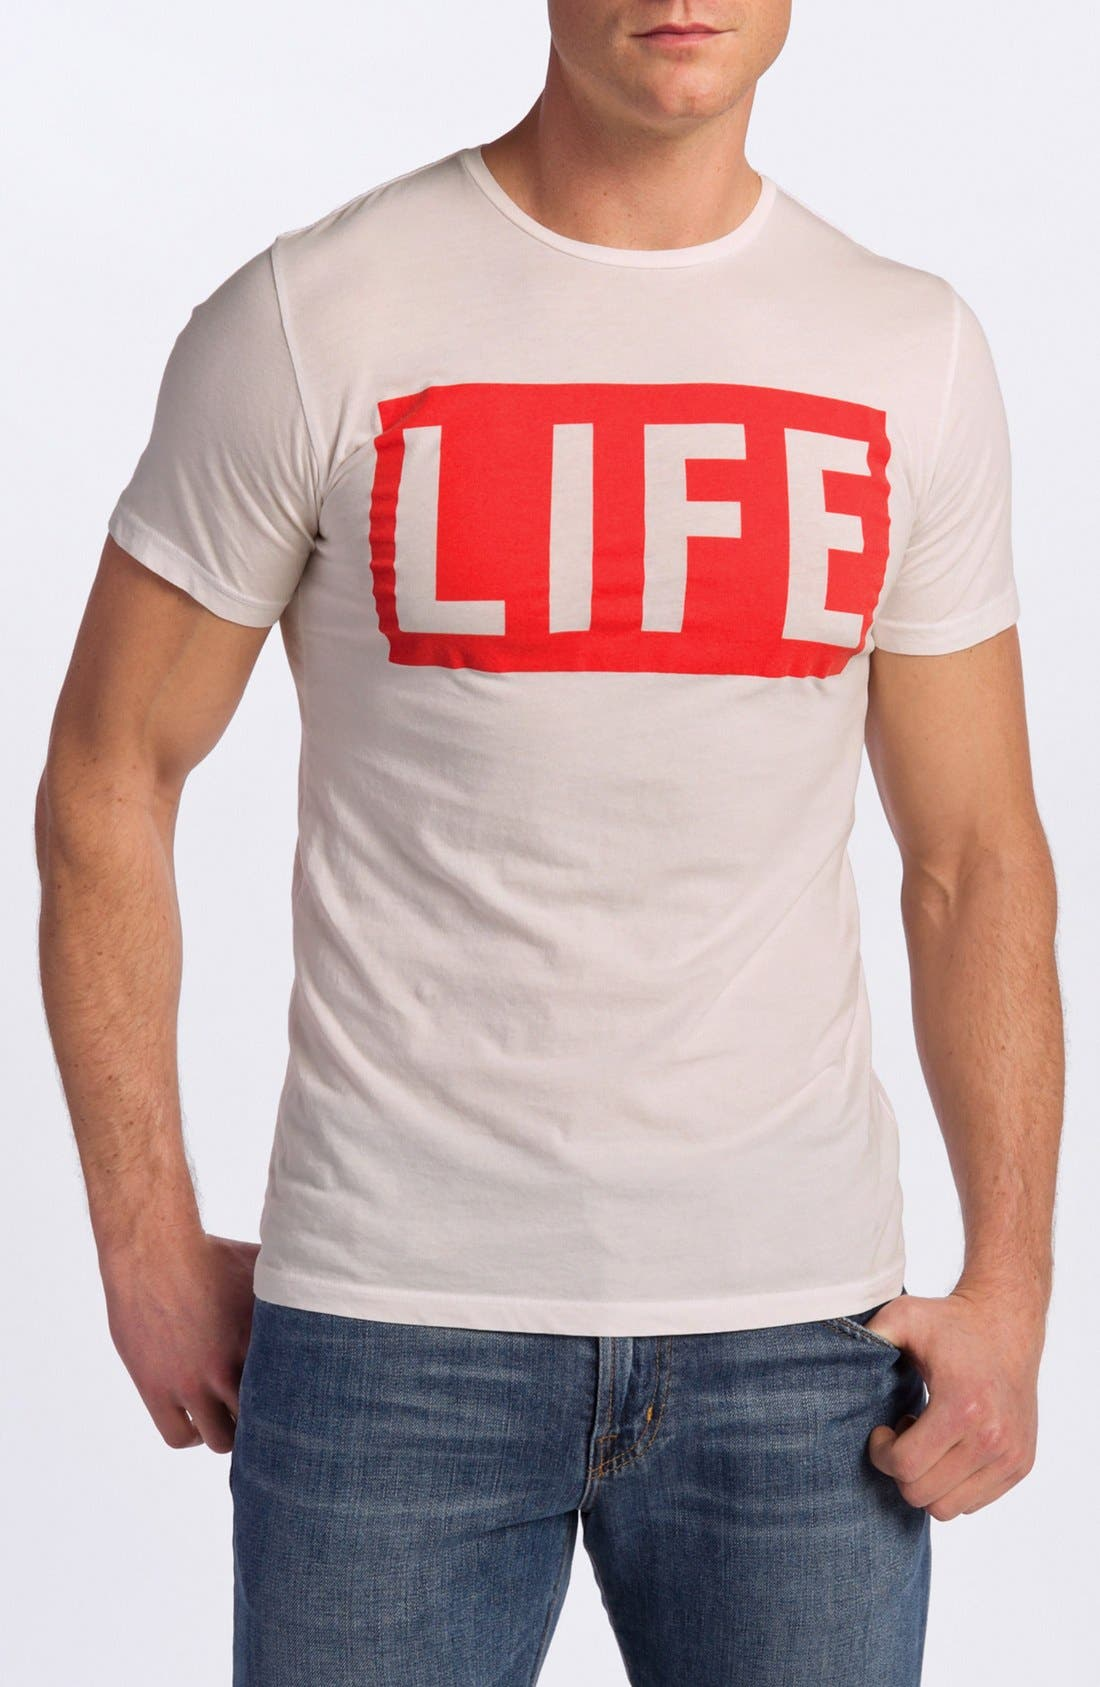 Alternate Image 1 Selected - Altru 'LIFE®' Graphic Crewneck T-Shirt